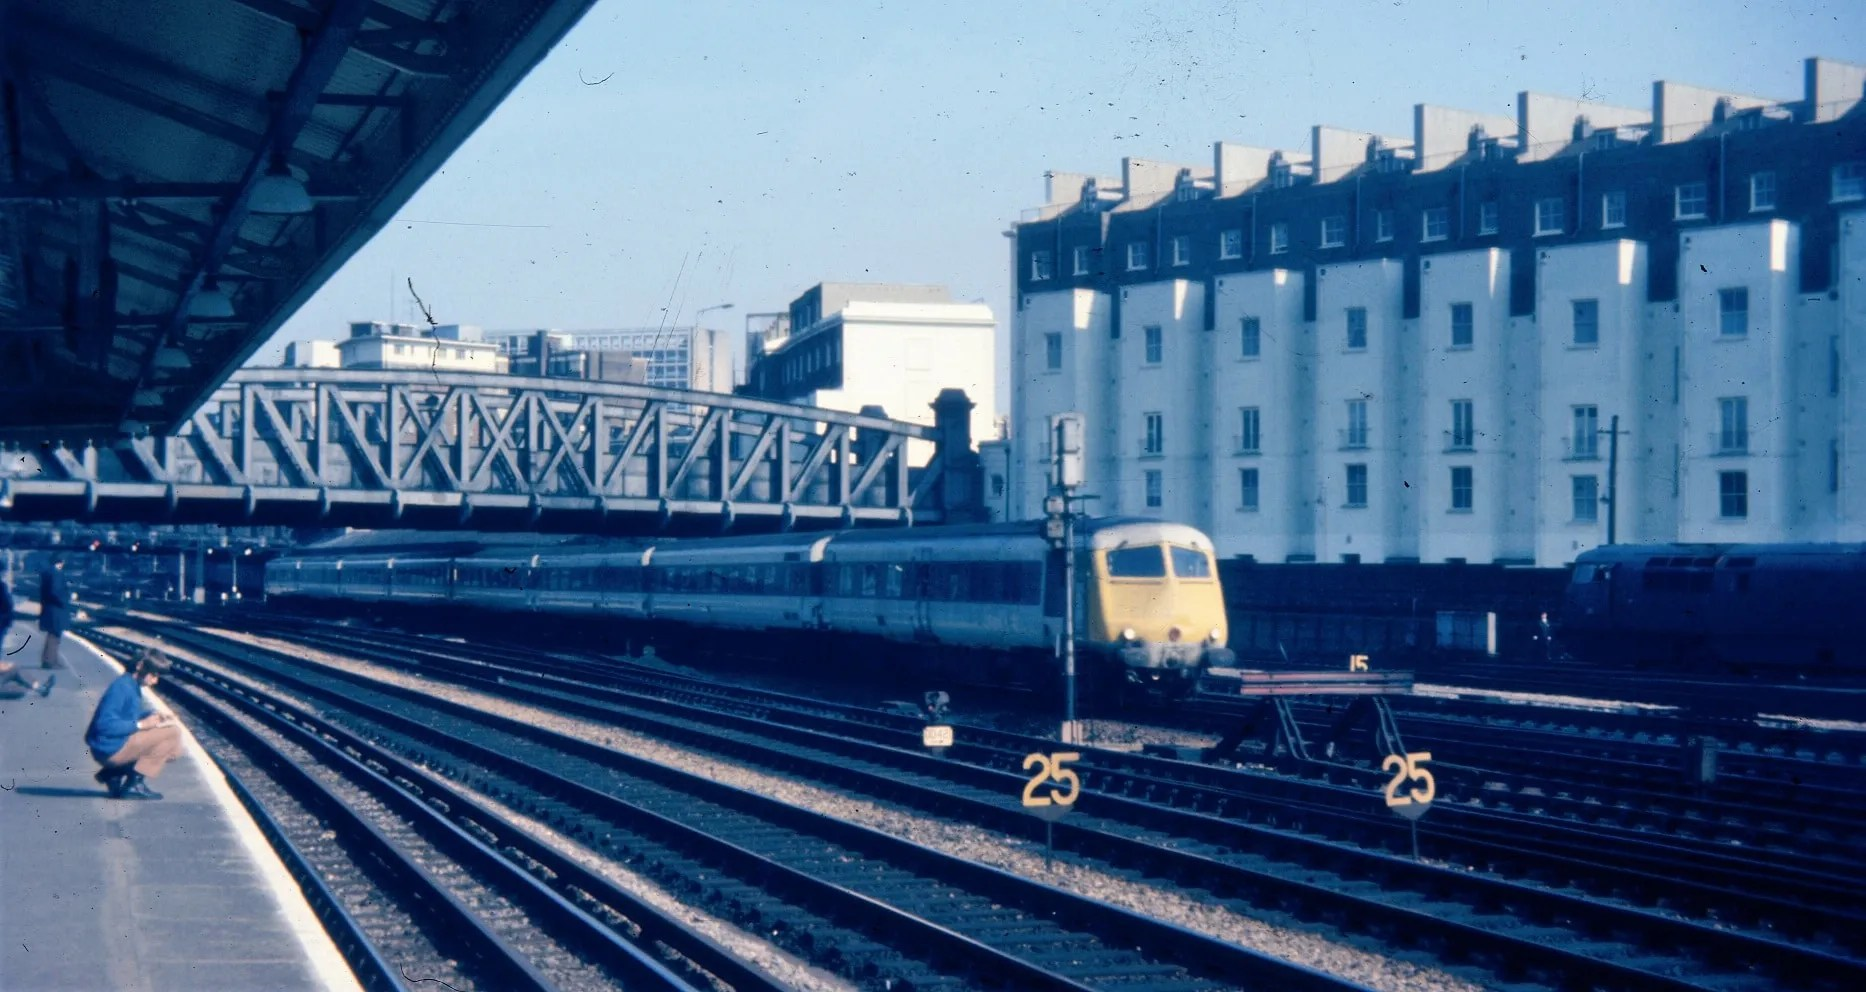 Metro Cammell Pullman - Royal Oak station - British Railway photo